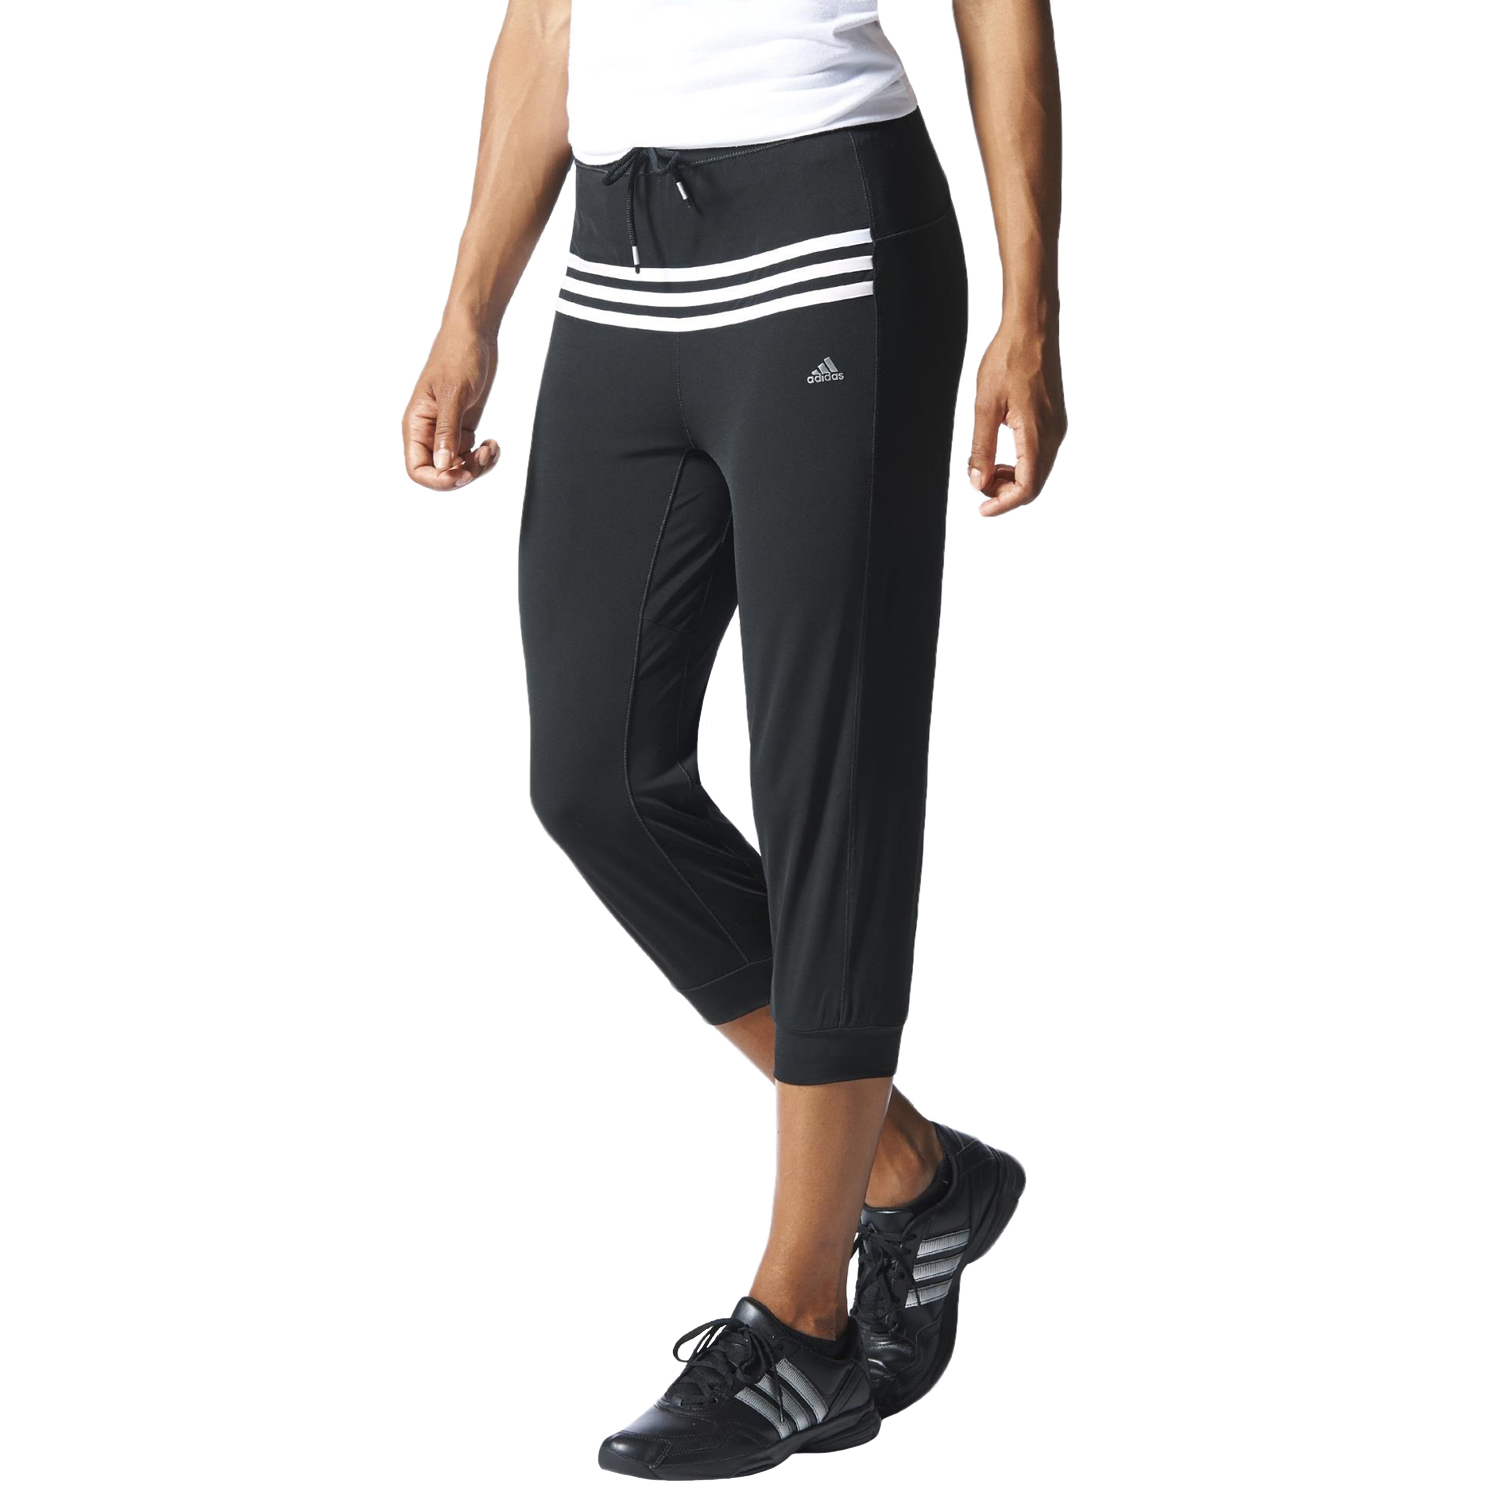 Cool These Womens Running Pants Keep You Warm On Windy Runs The Sweatwicking Climalite Fabric Keeps You Dry, And An Inside Pocket Keeps Your Keys Secure Featuring Back Leg Zips For Quick Changes Protect Yourself! Climaproof Storm Is